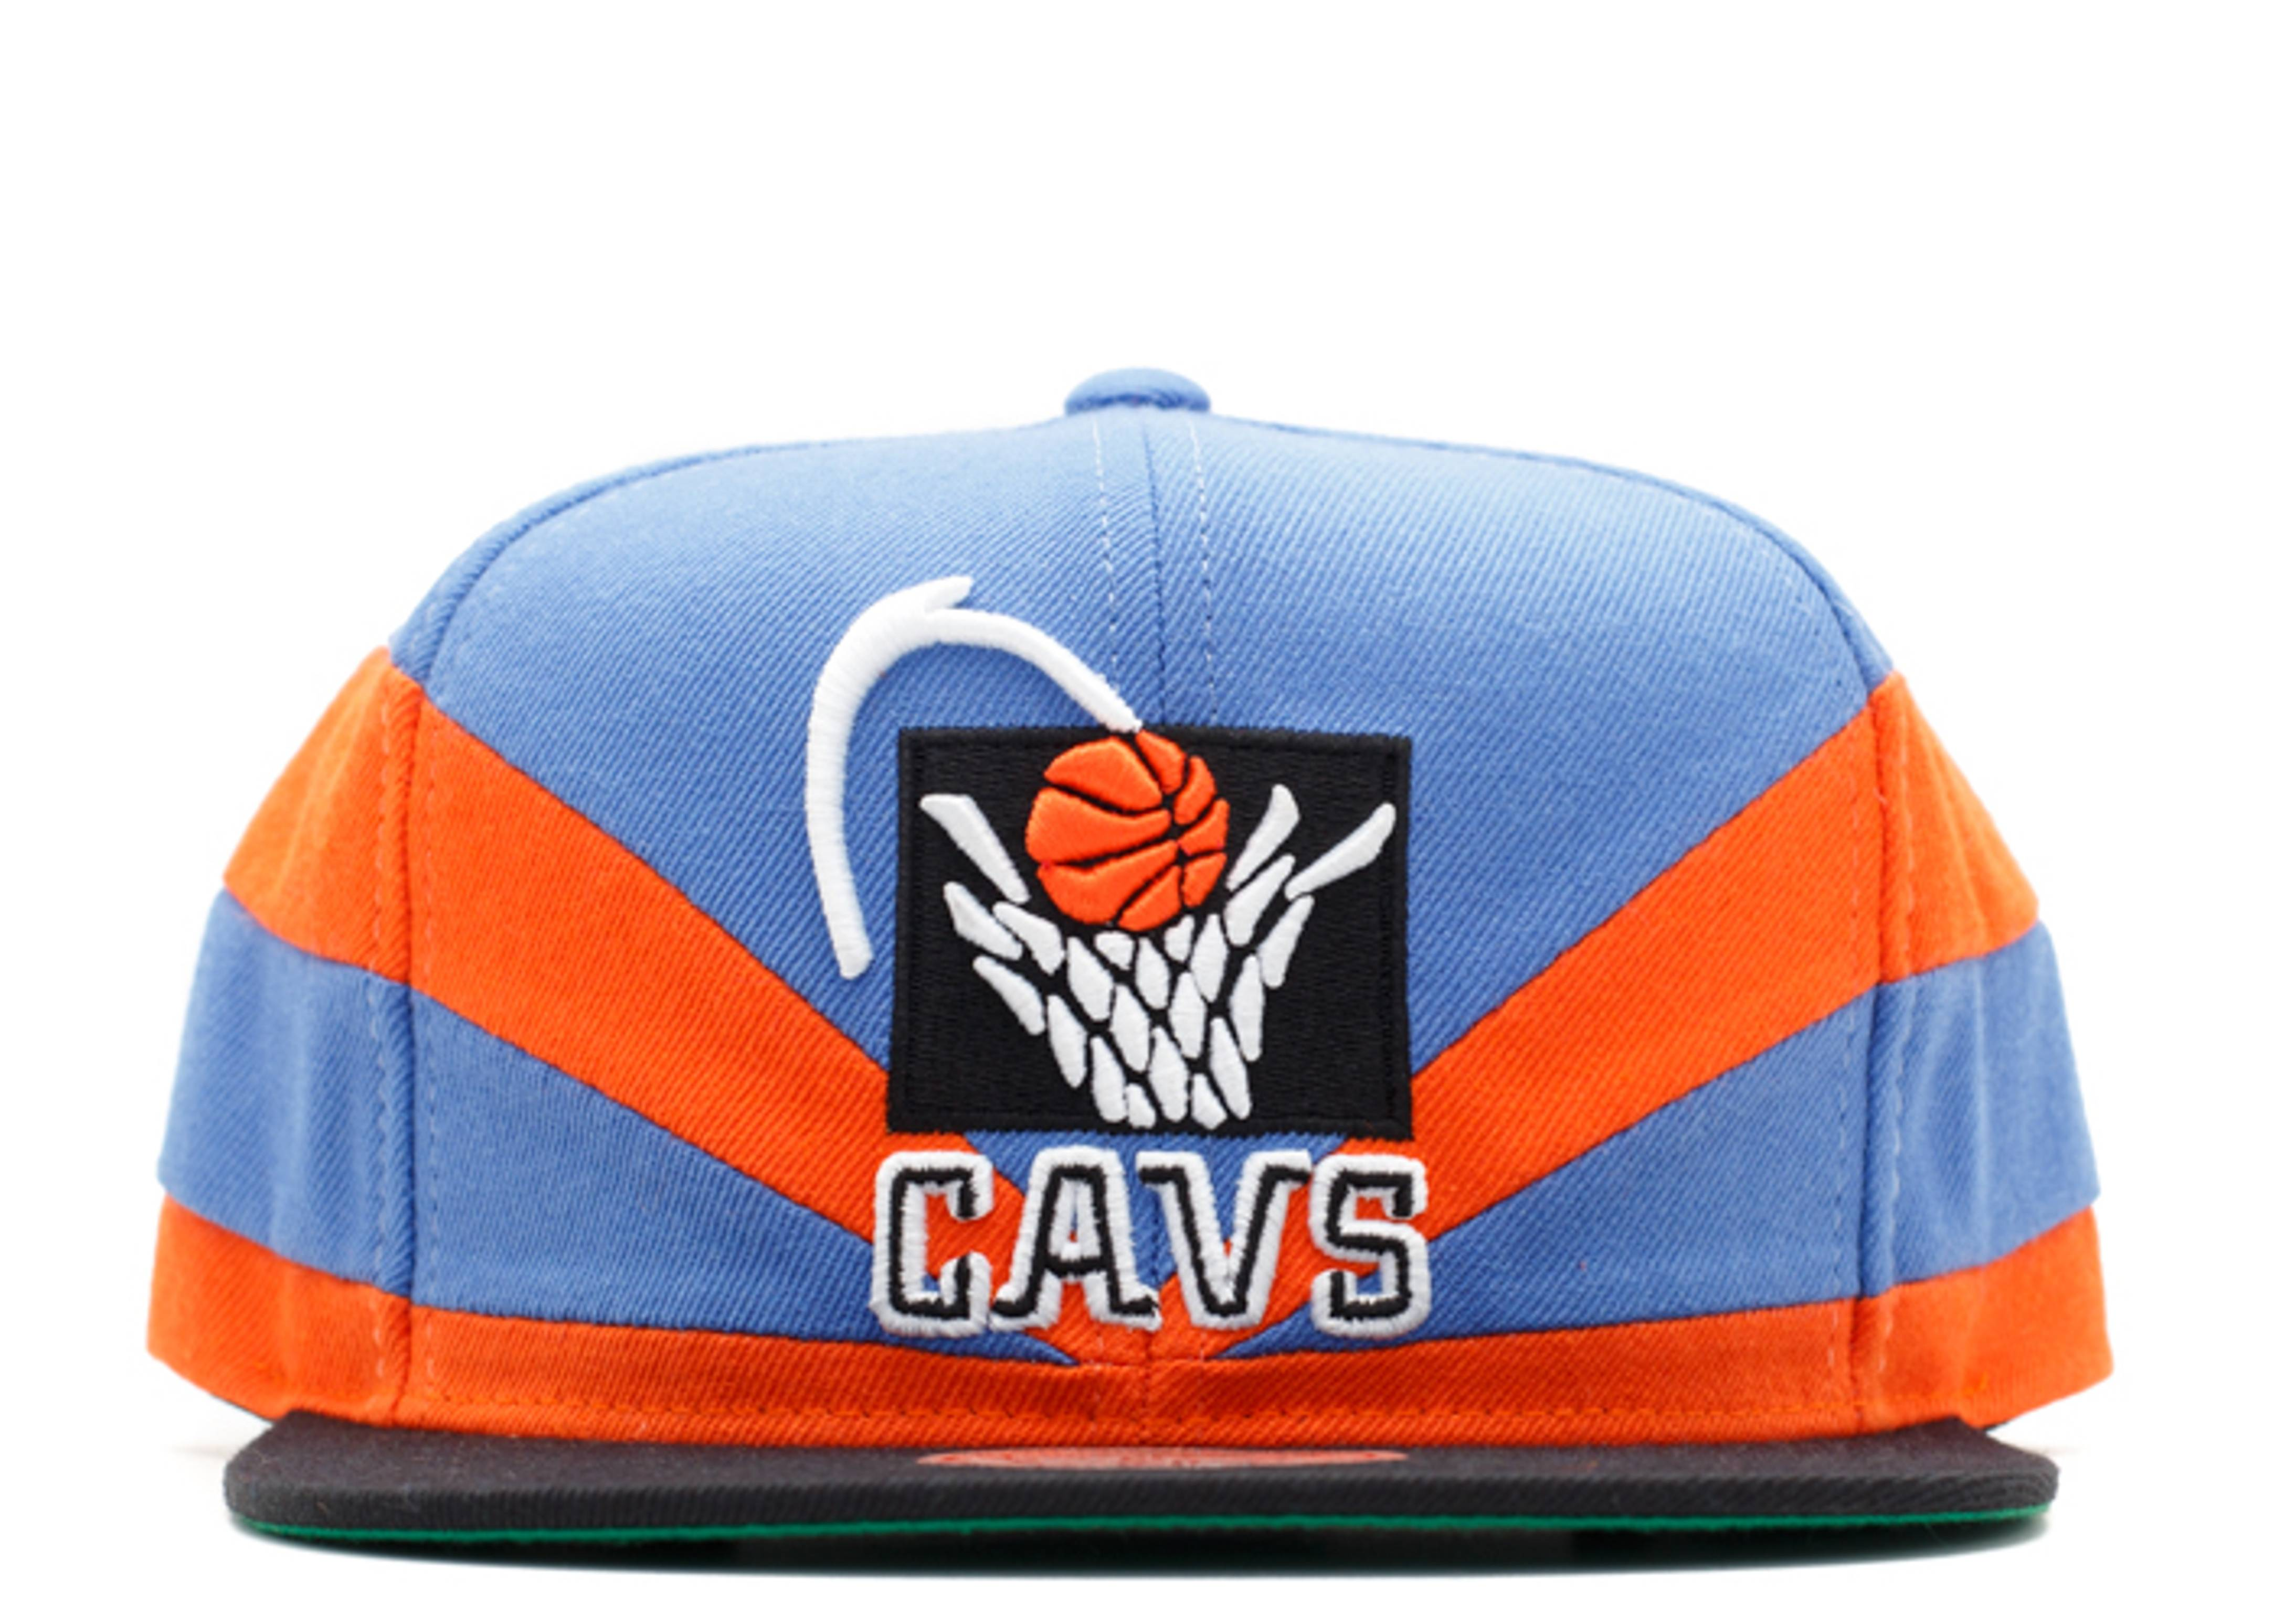 clevend cavaliers snap-back